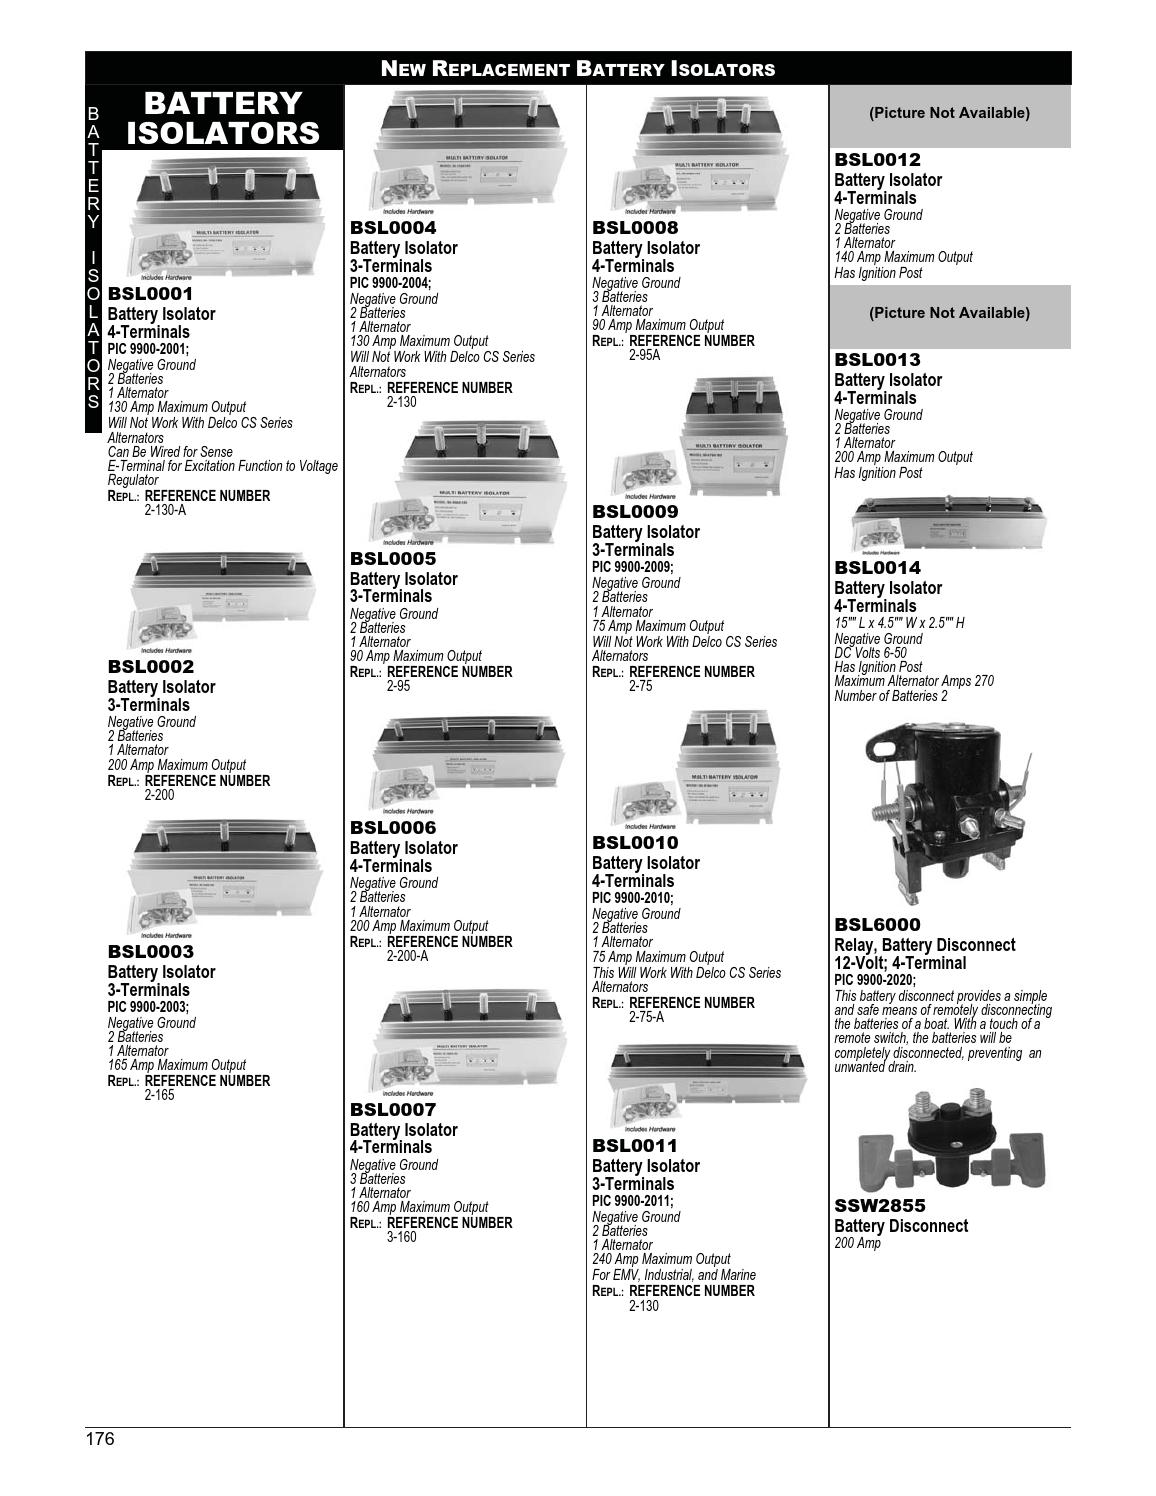 Marine By Arrowhead Electrical Products Issuu How Does A Battery Isolator Work